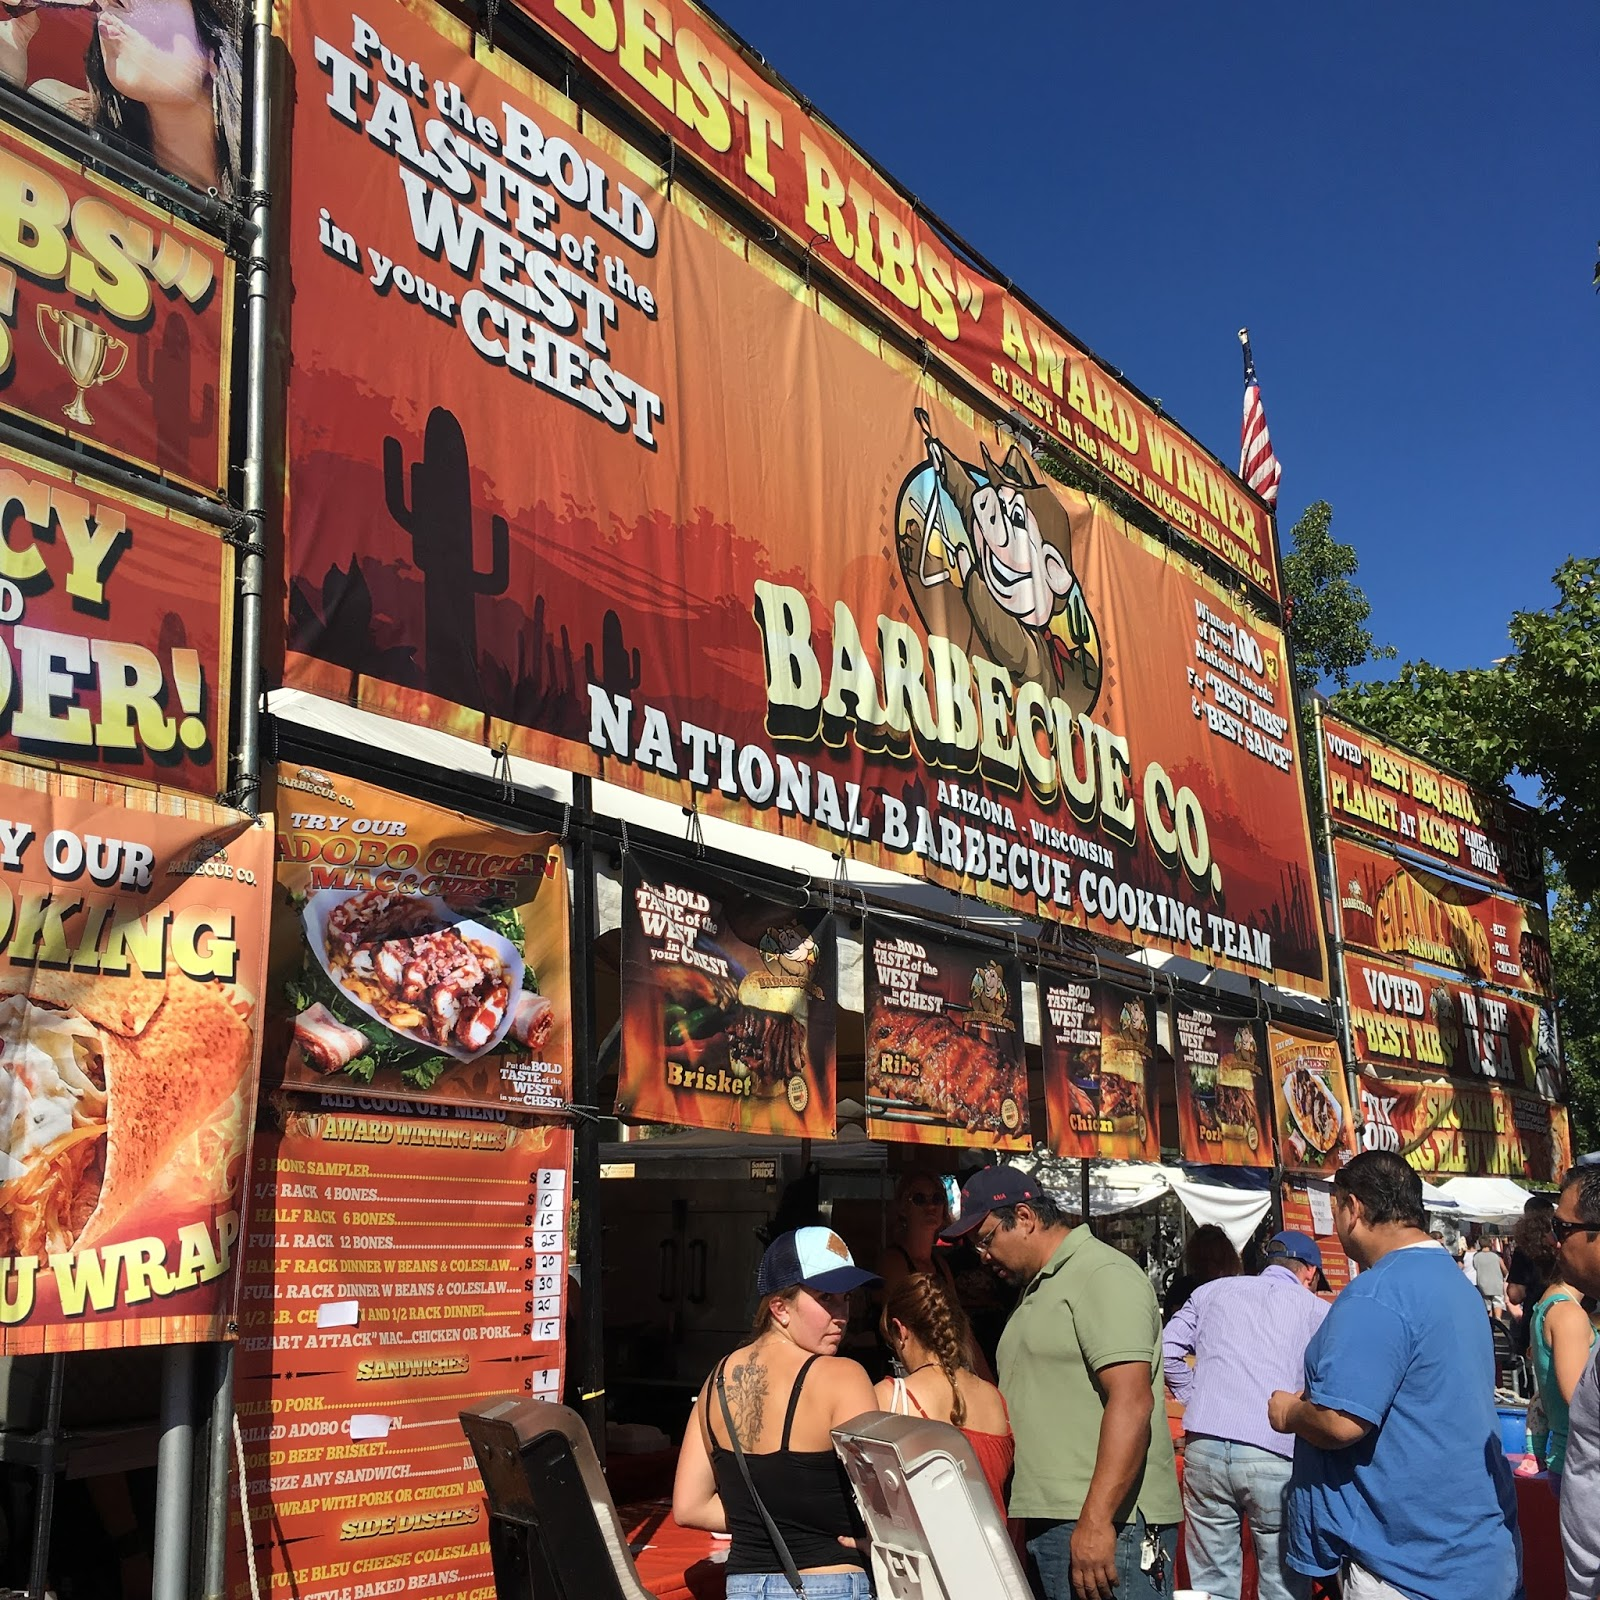 Reno Best in the West Nugget Rib Cook-Off